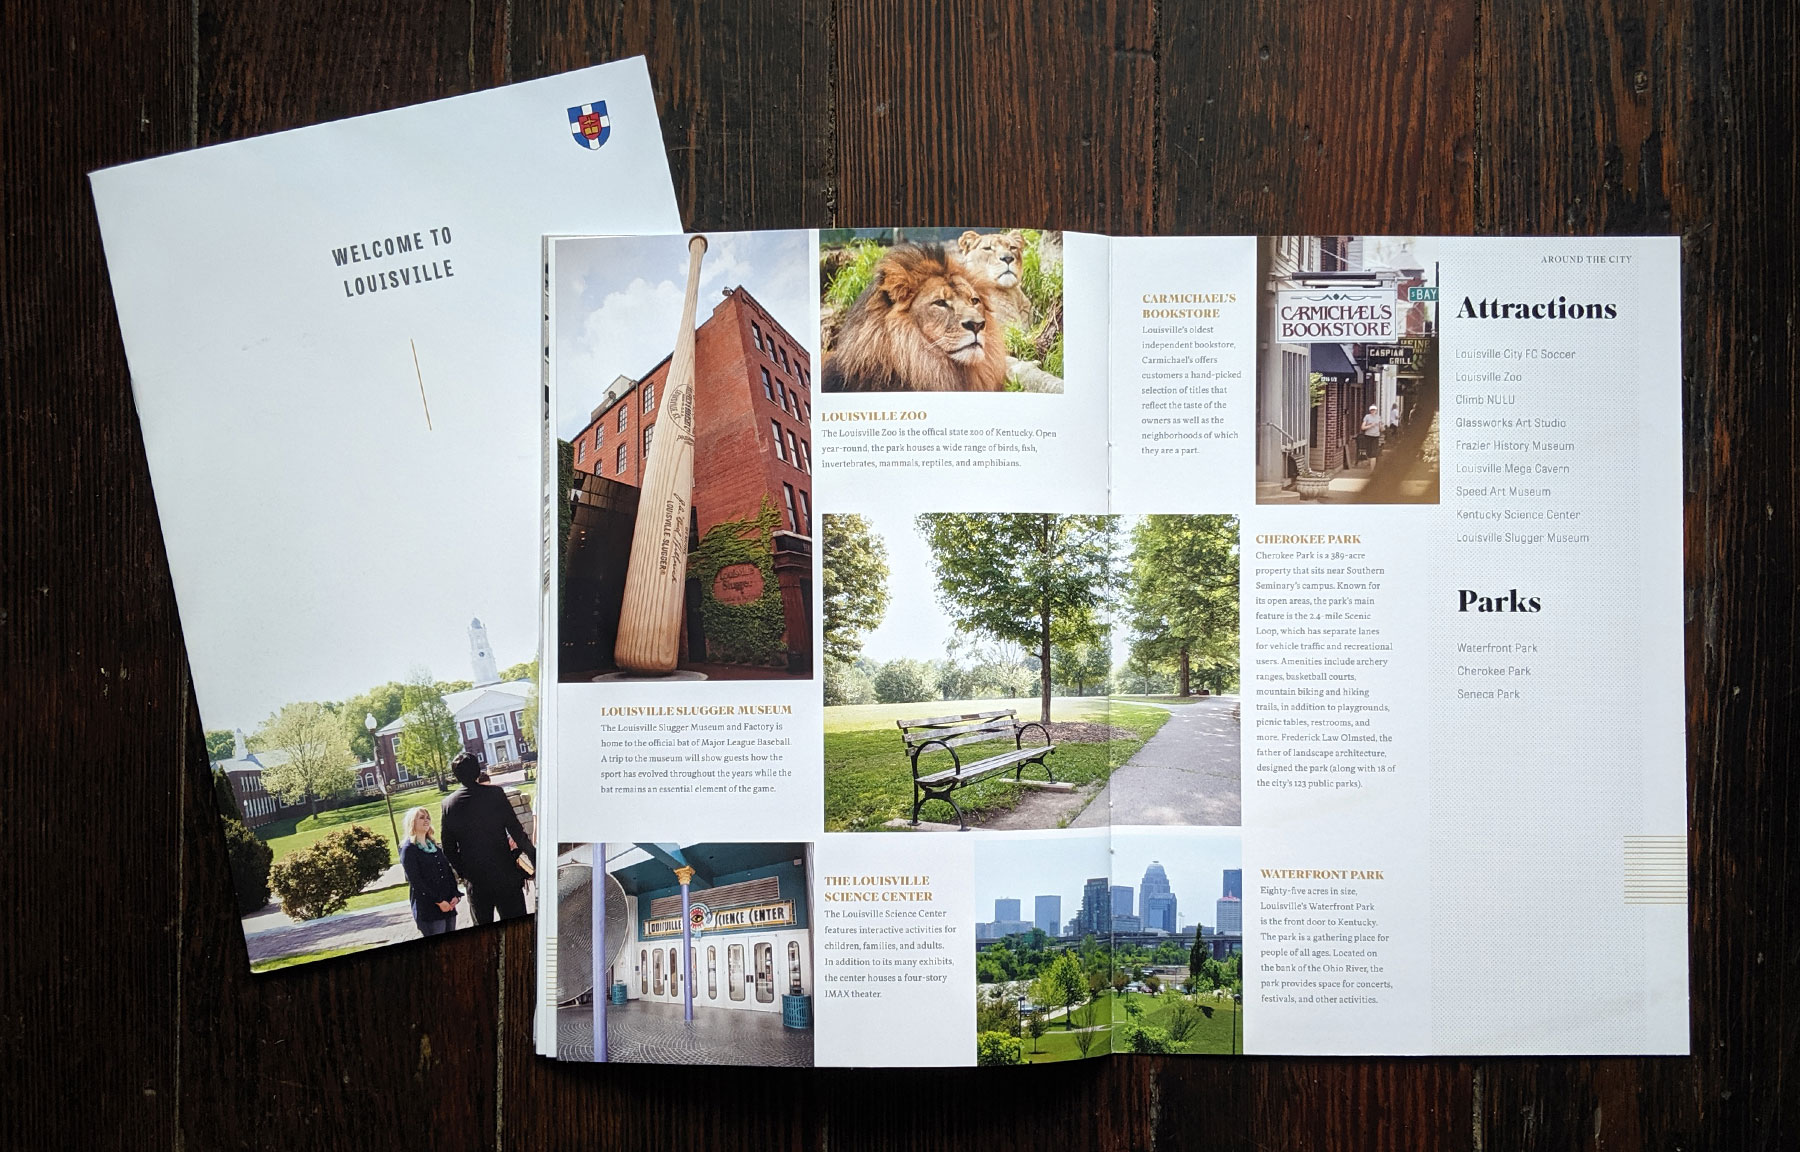 SBTS-Welcome-To-Louisville-Booklet-6.jpg